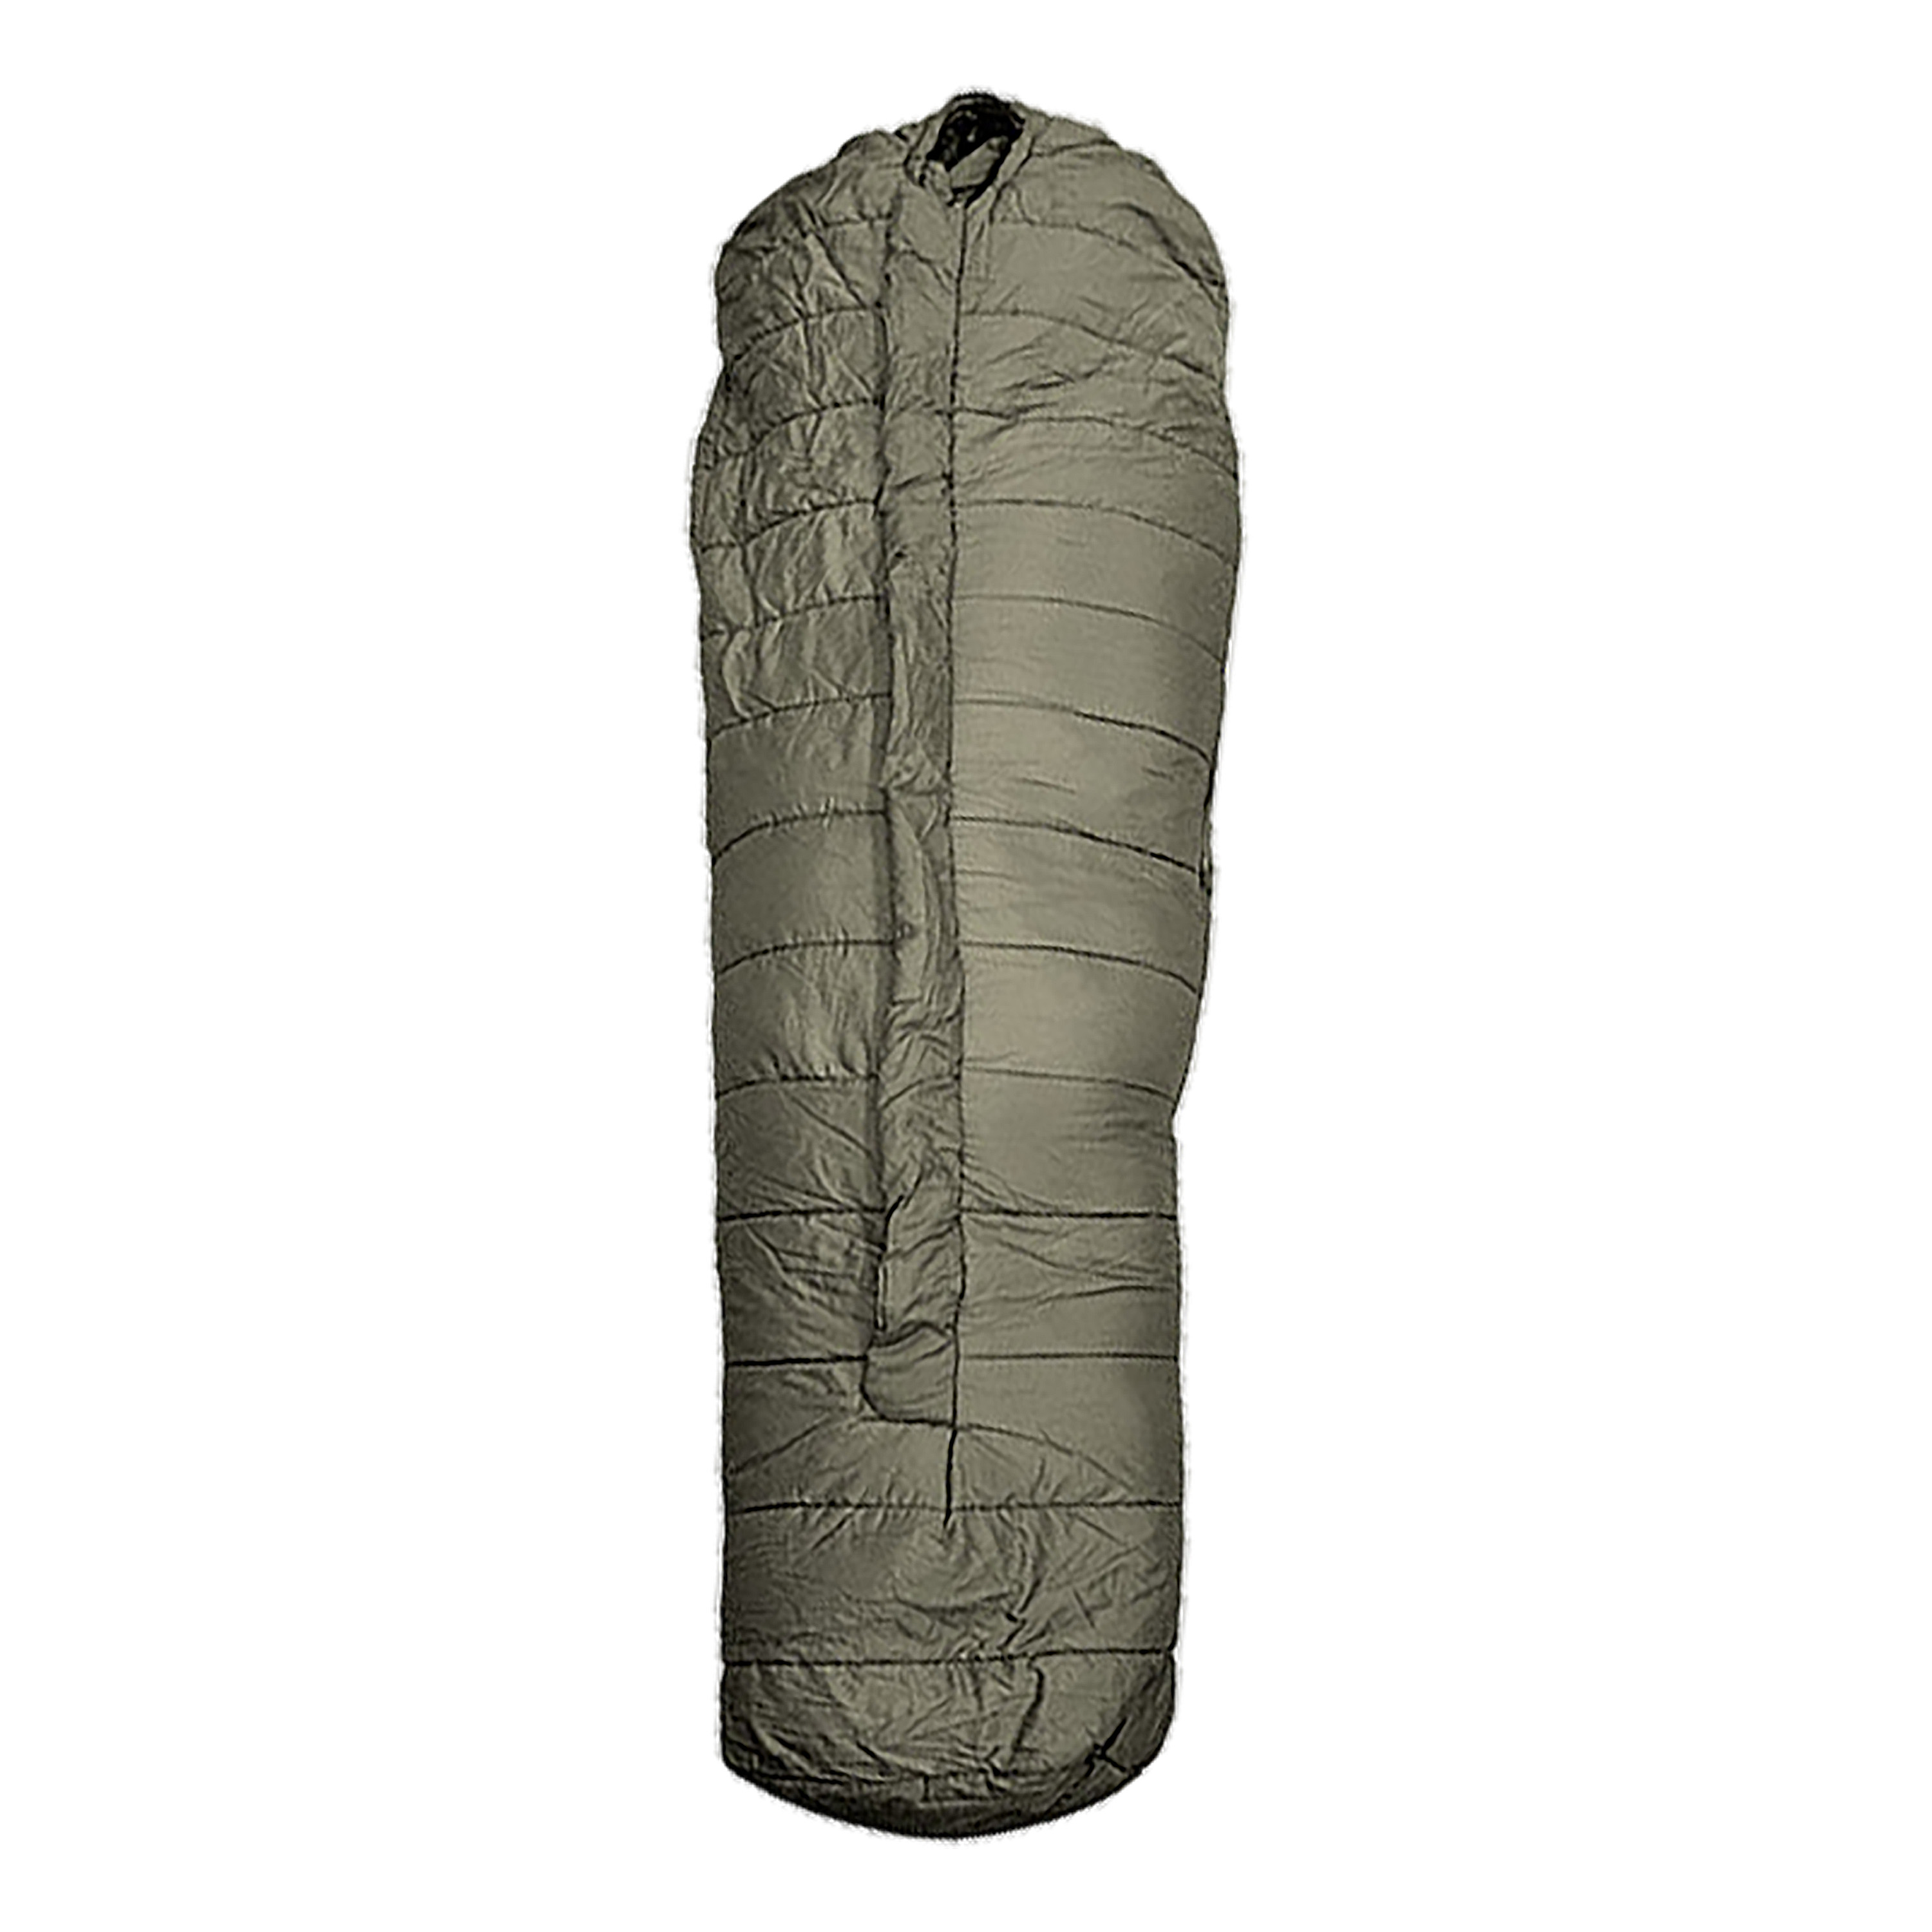 BW Winter Sleeping Bag II olive